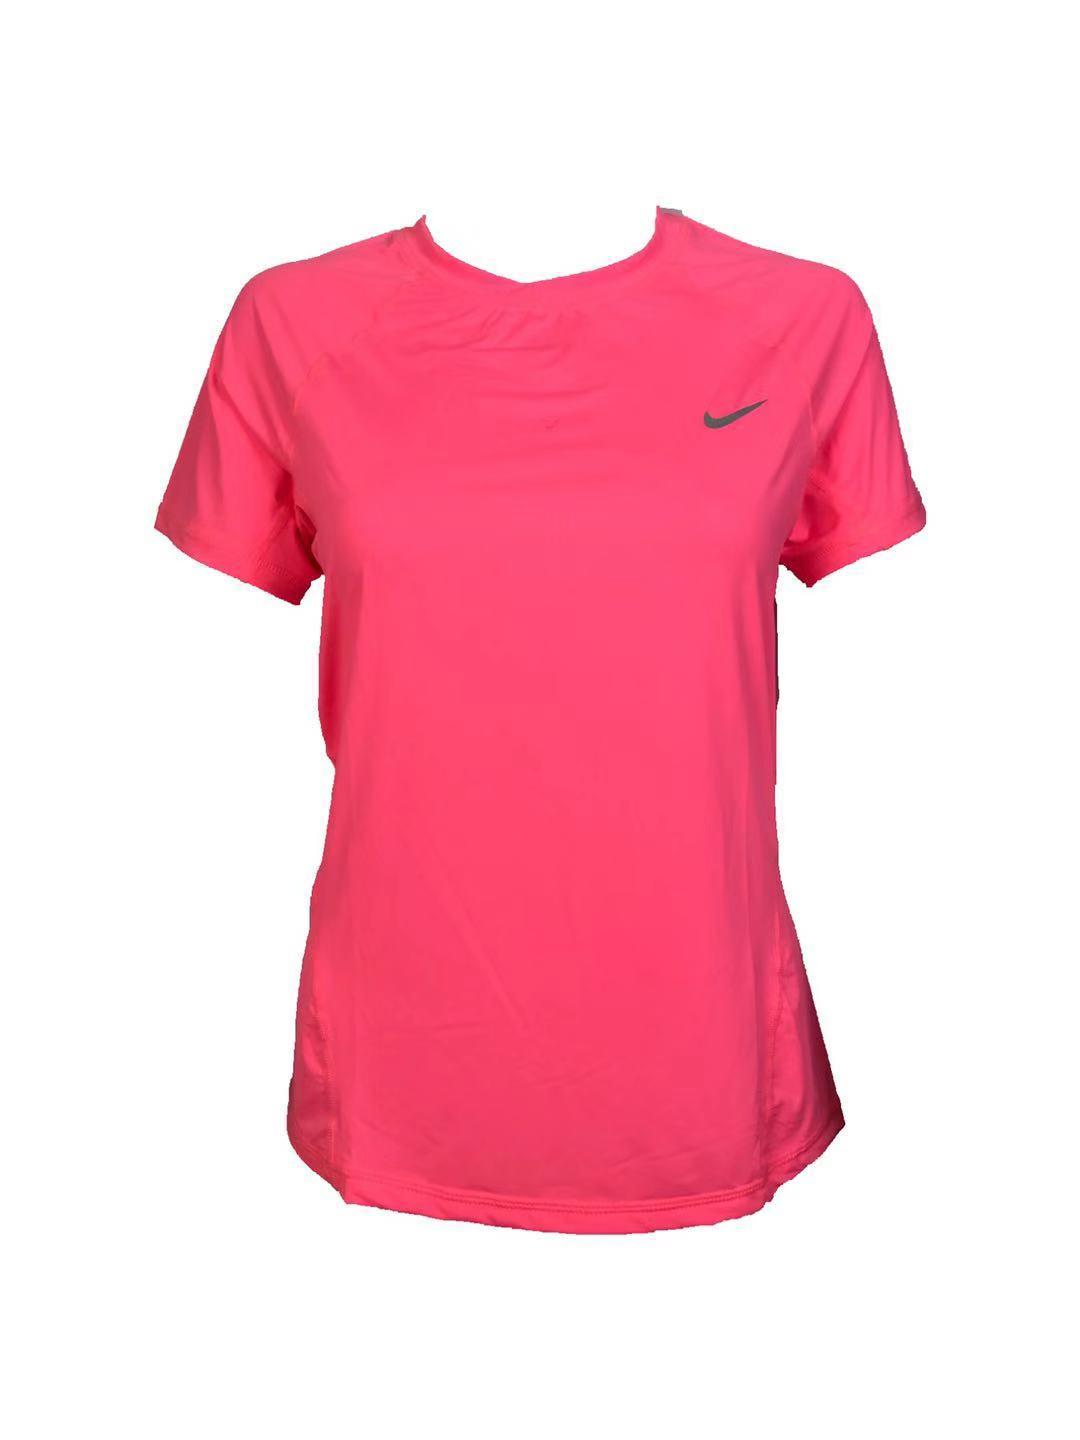 NW.2808#N IKE Short Sleeve Athletic Dry Fit Shirt For Women